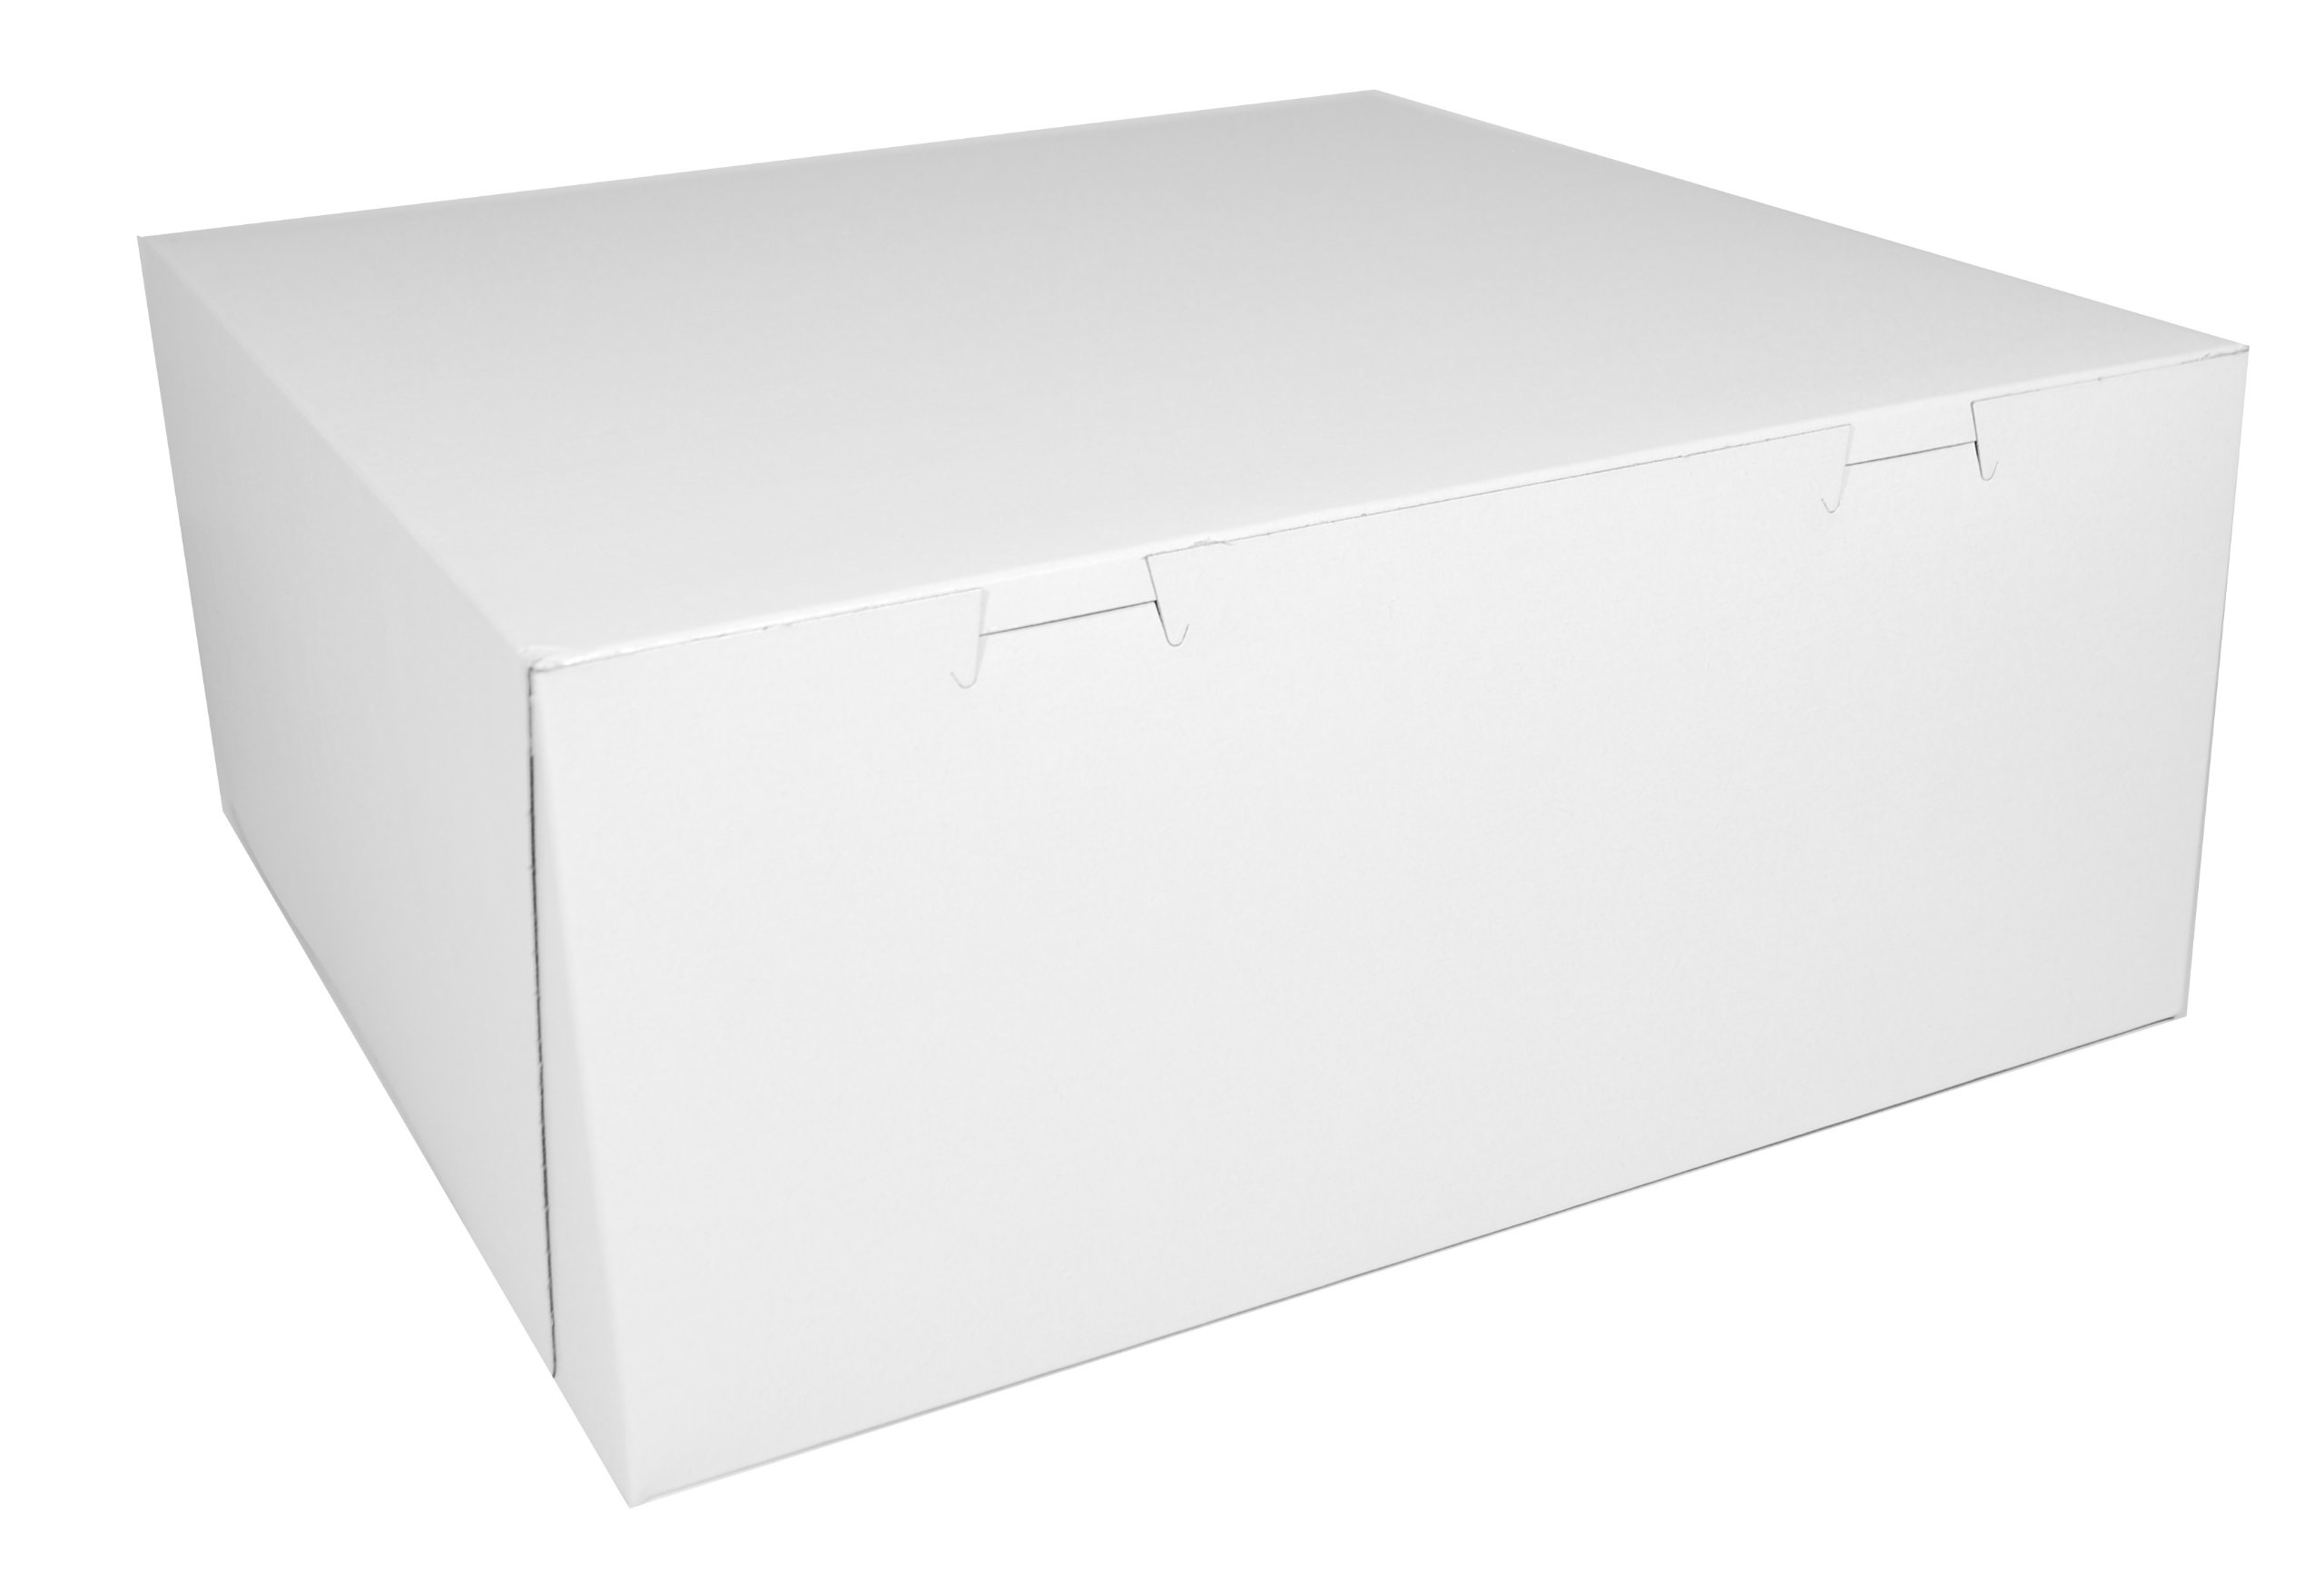 Southern Champion Tray 0993 Premium Clay Coated Kraft Paperboard White Non-Window Lock Corner Bakery Box, 14'' Length x 14'' Width x 6'' Height (Case of 50)